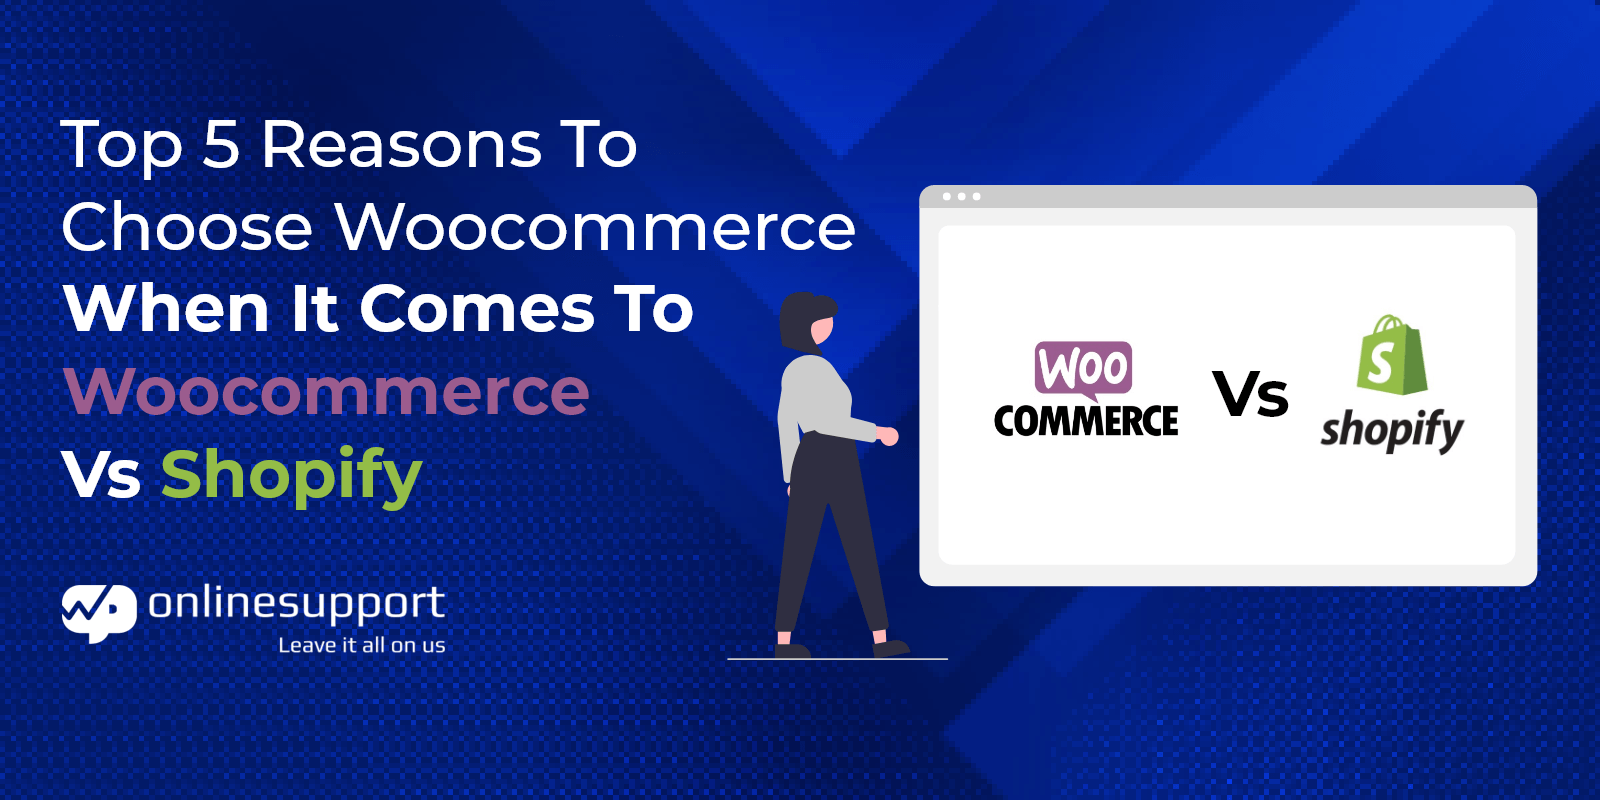 Top 5 Reasons To Choose Woocommerce When It Comes To Woocommerce Vs Shopify